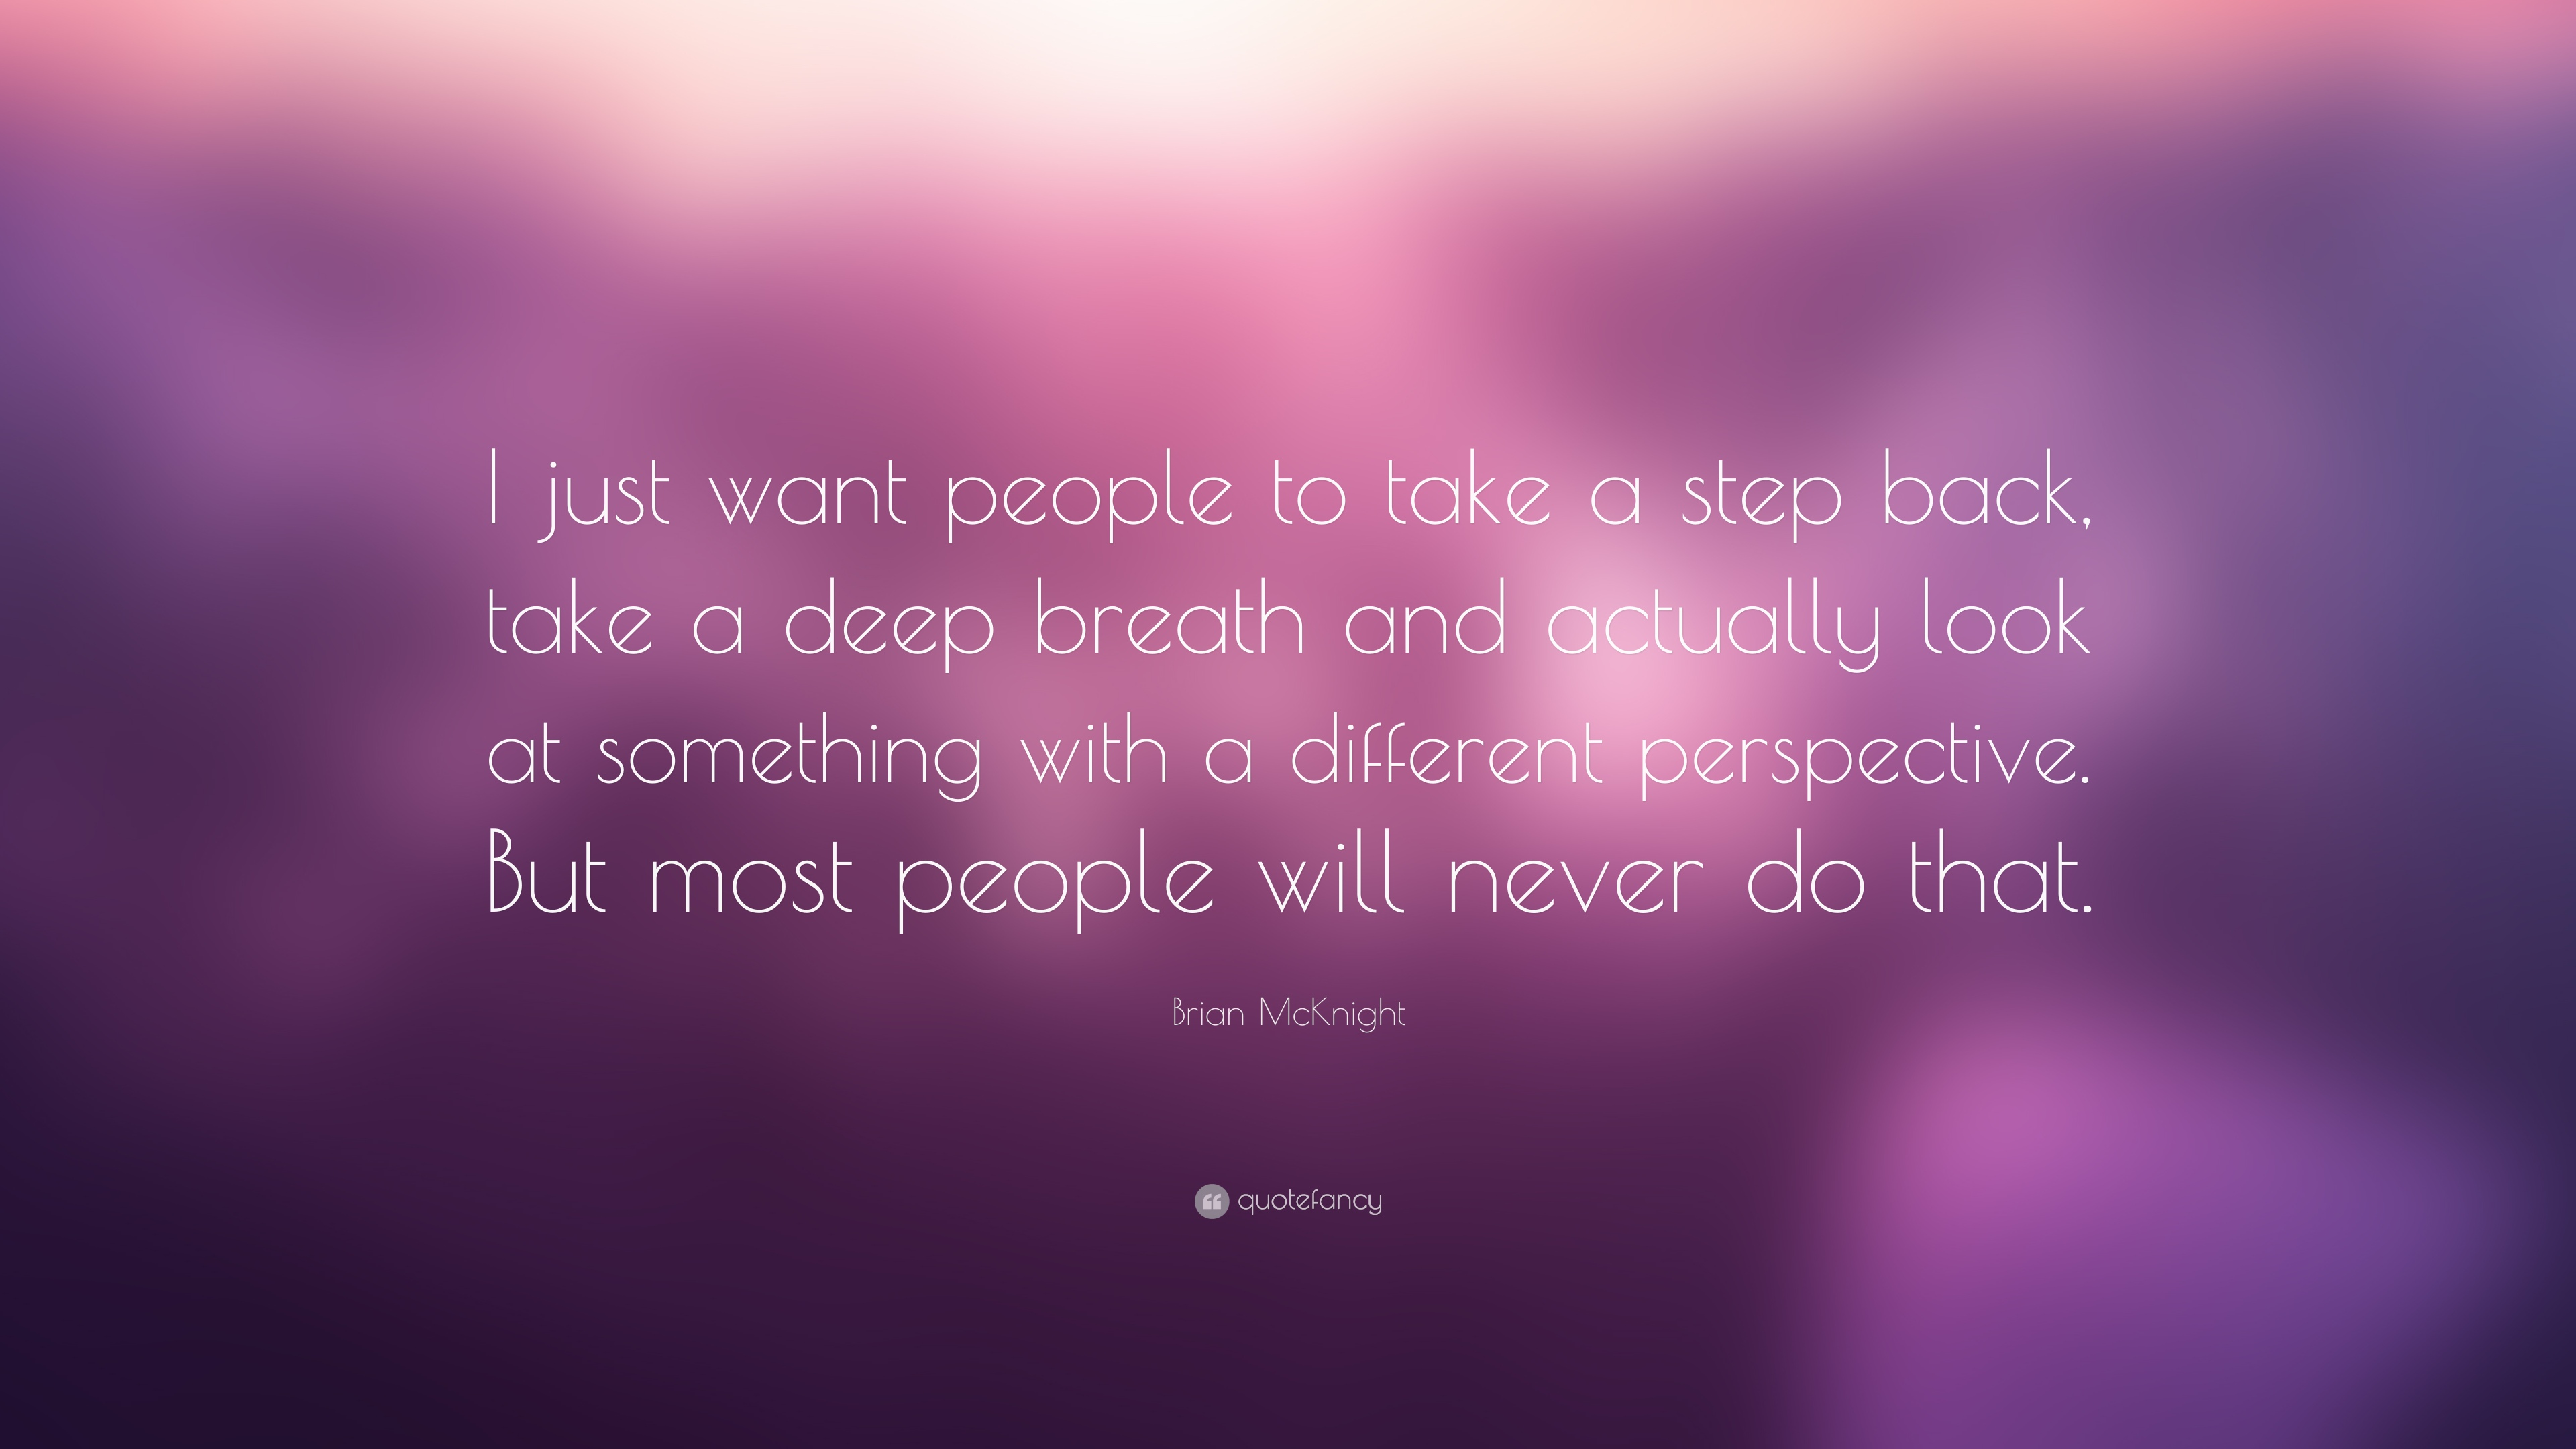 Brian Mcknight Quote I Just Want People To Take A Step Back Take A Deep Breath And Actually Look At Something With A Different Perspective 7 Wallpapers Quotefancy